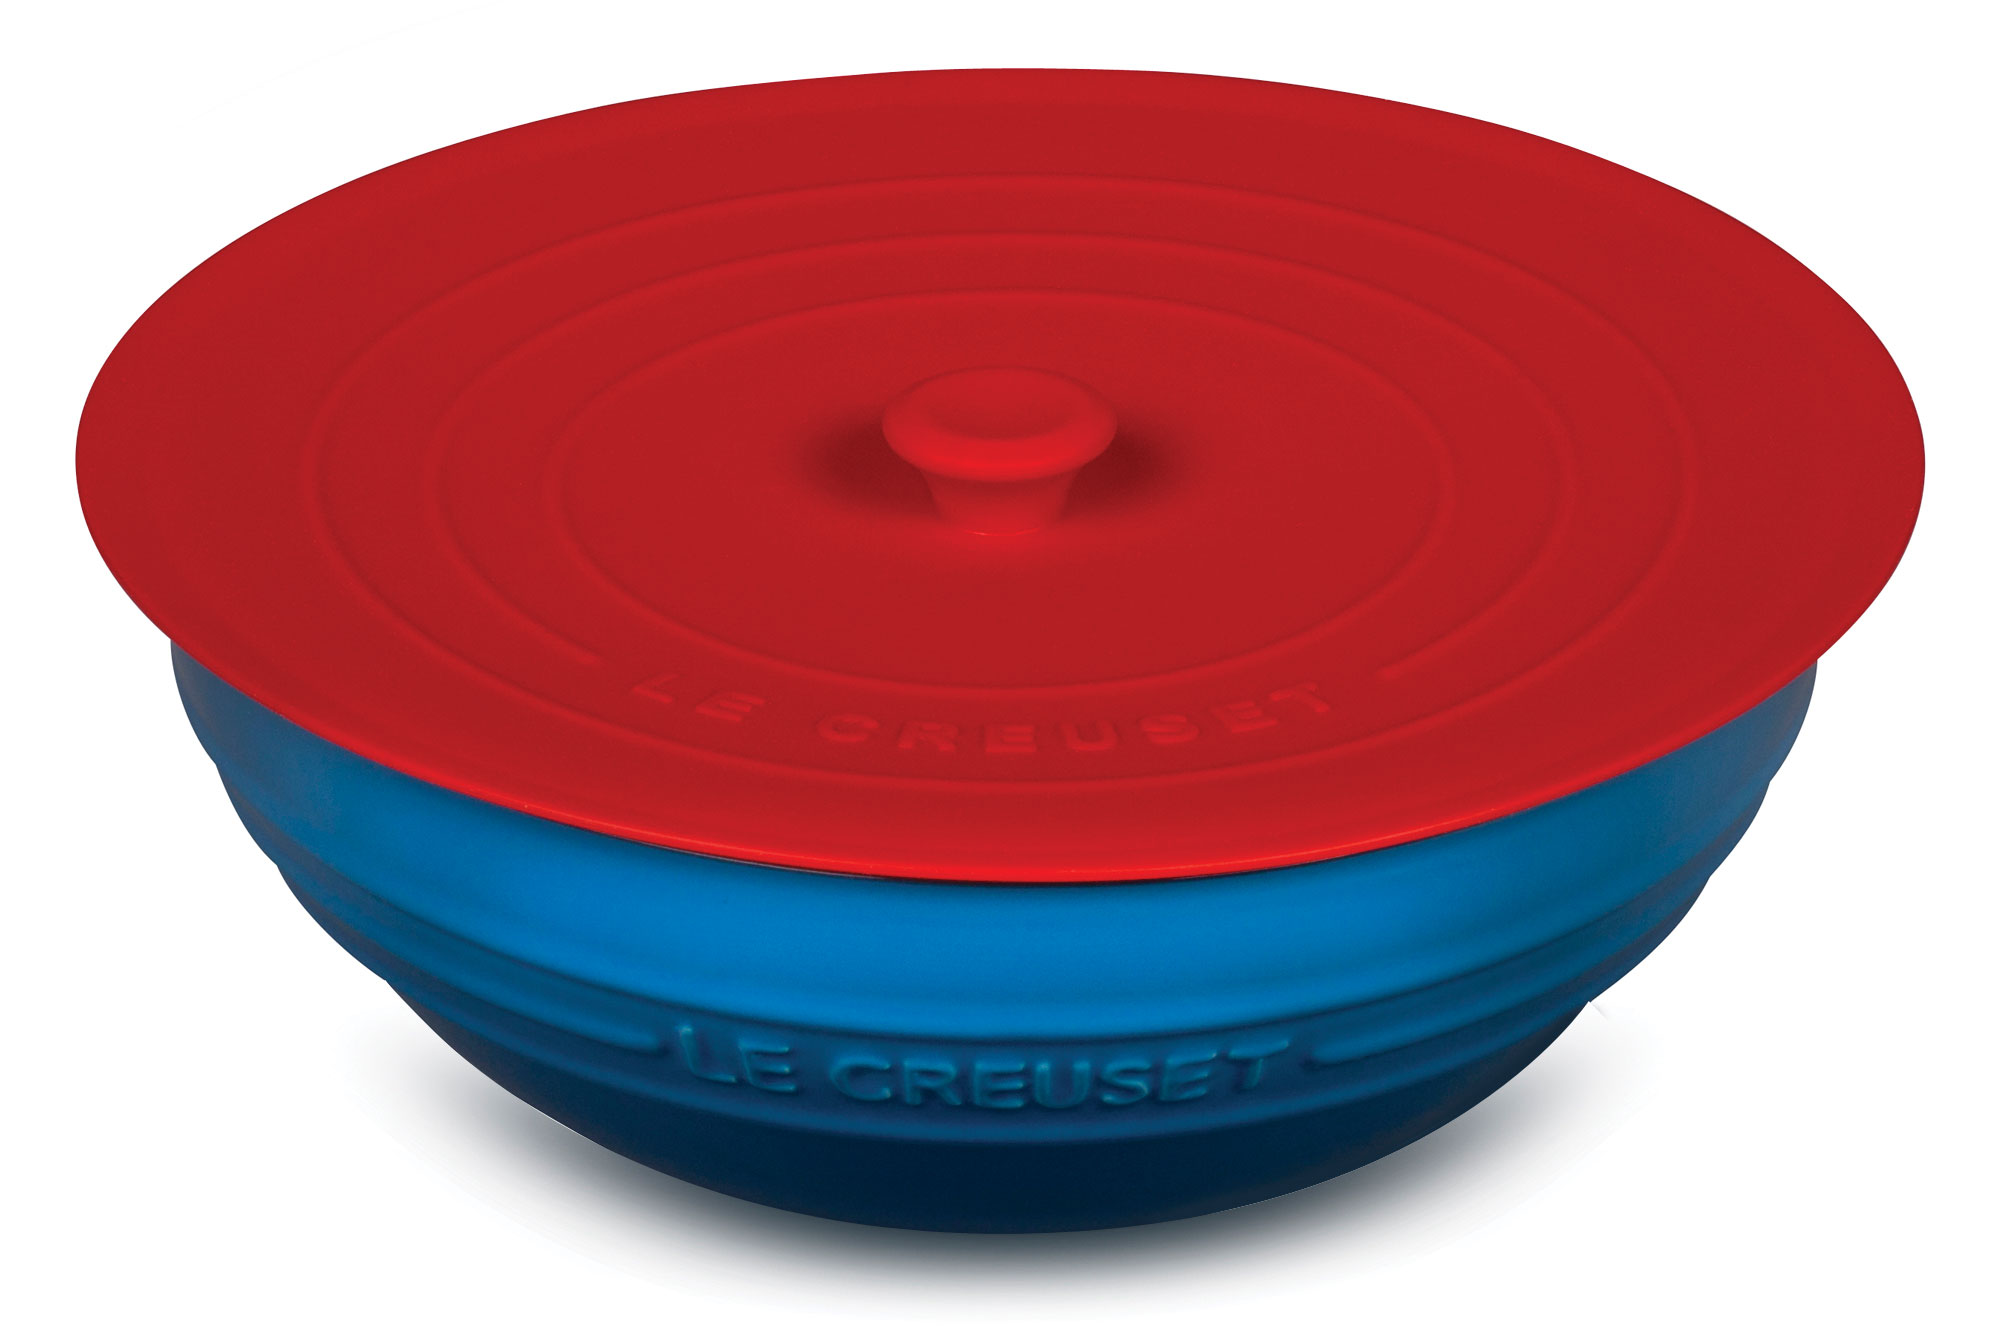 Le Creuset Cherry Red Silicone Lid 8 Inch Cutlery And More